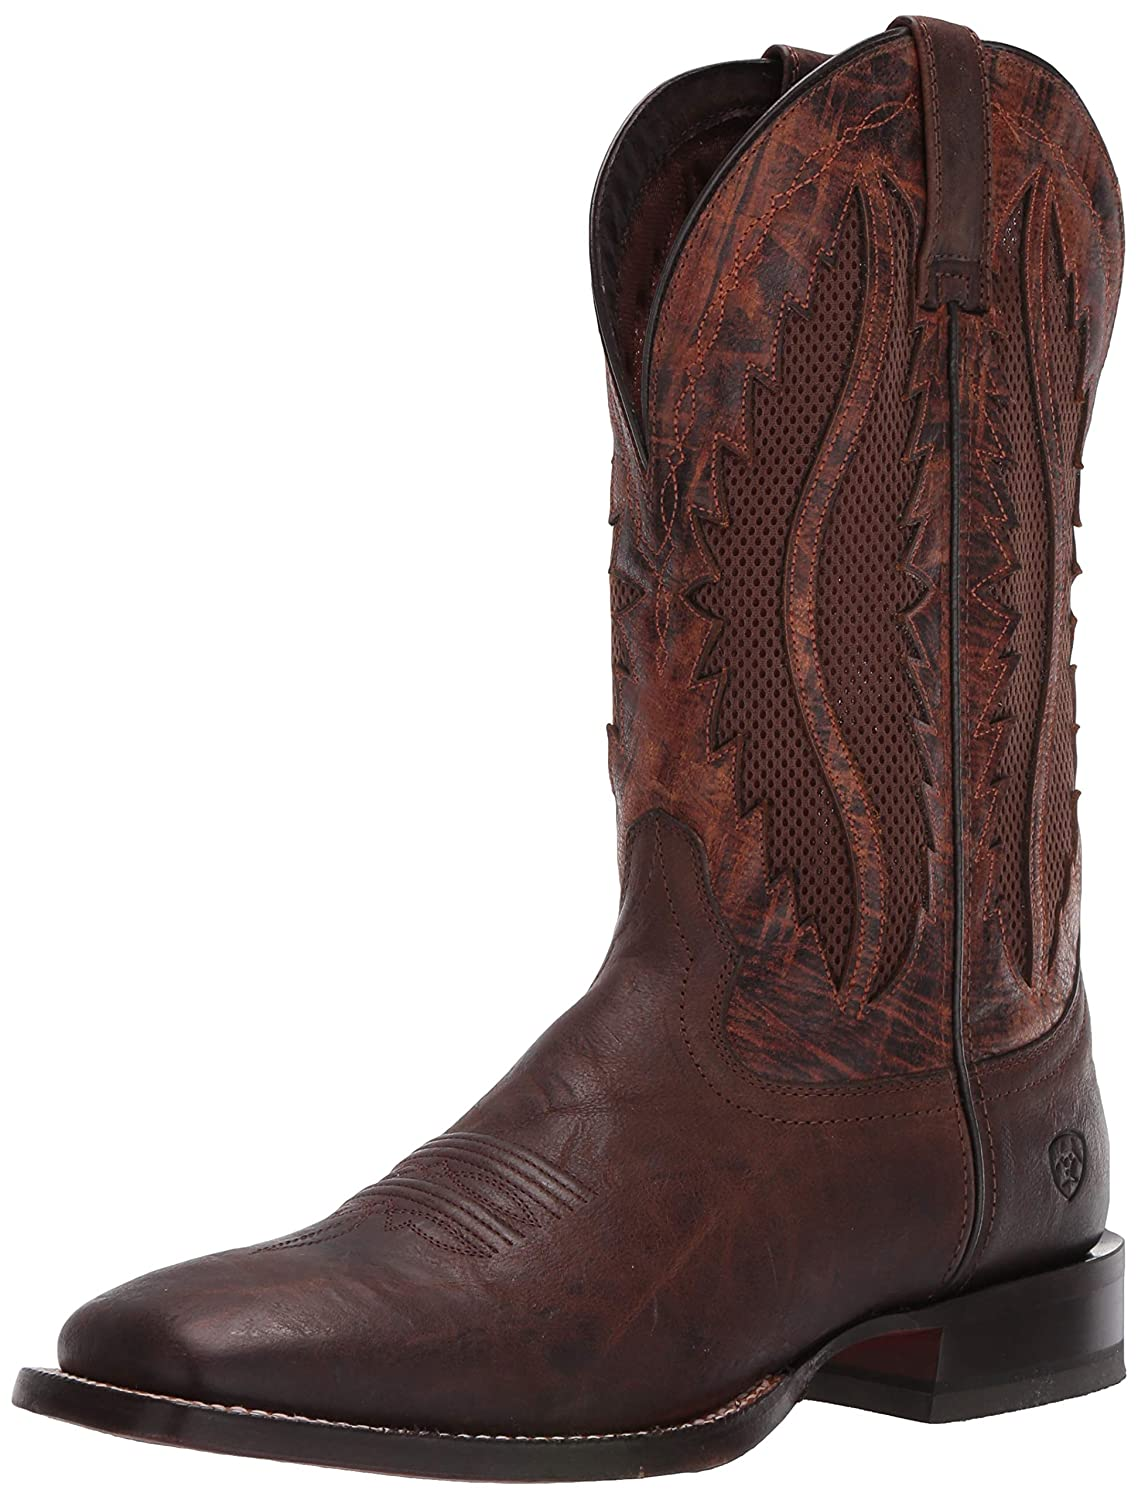 Tobacco Bay Sienna Ariat Men's Traditional Venttek Western Boot